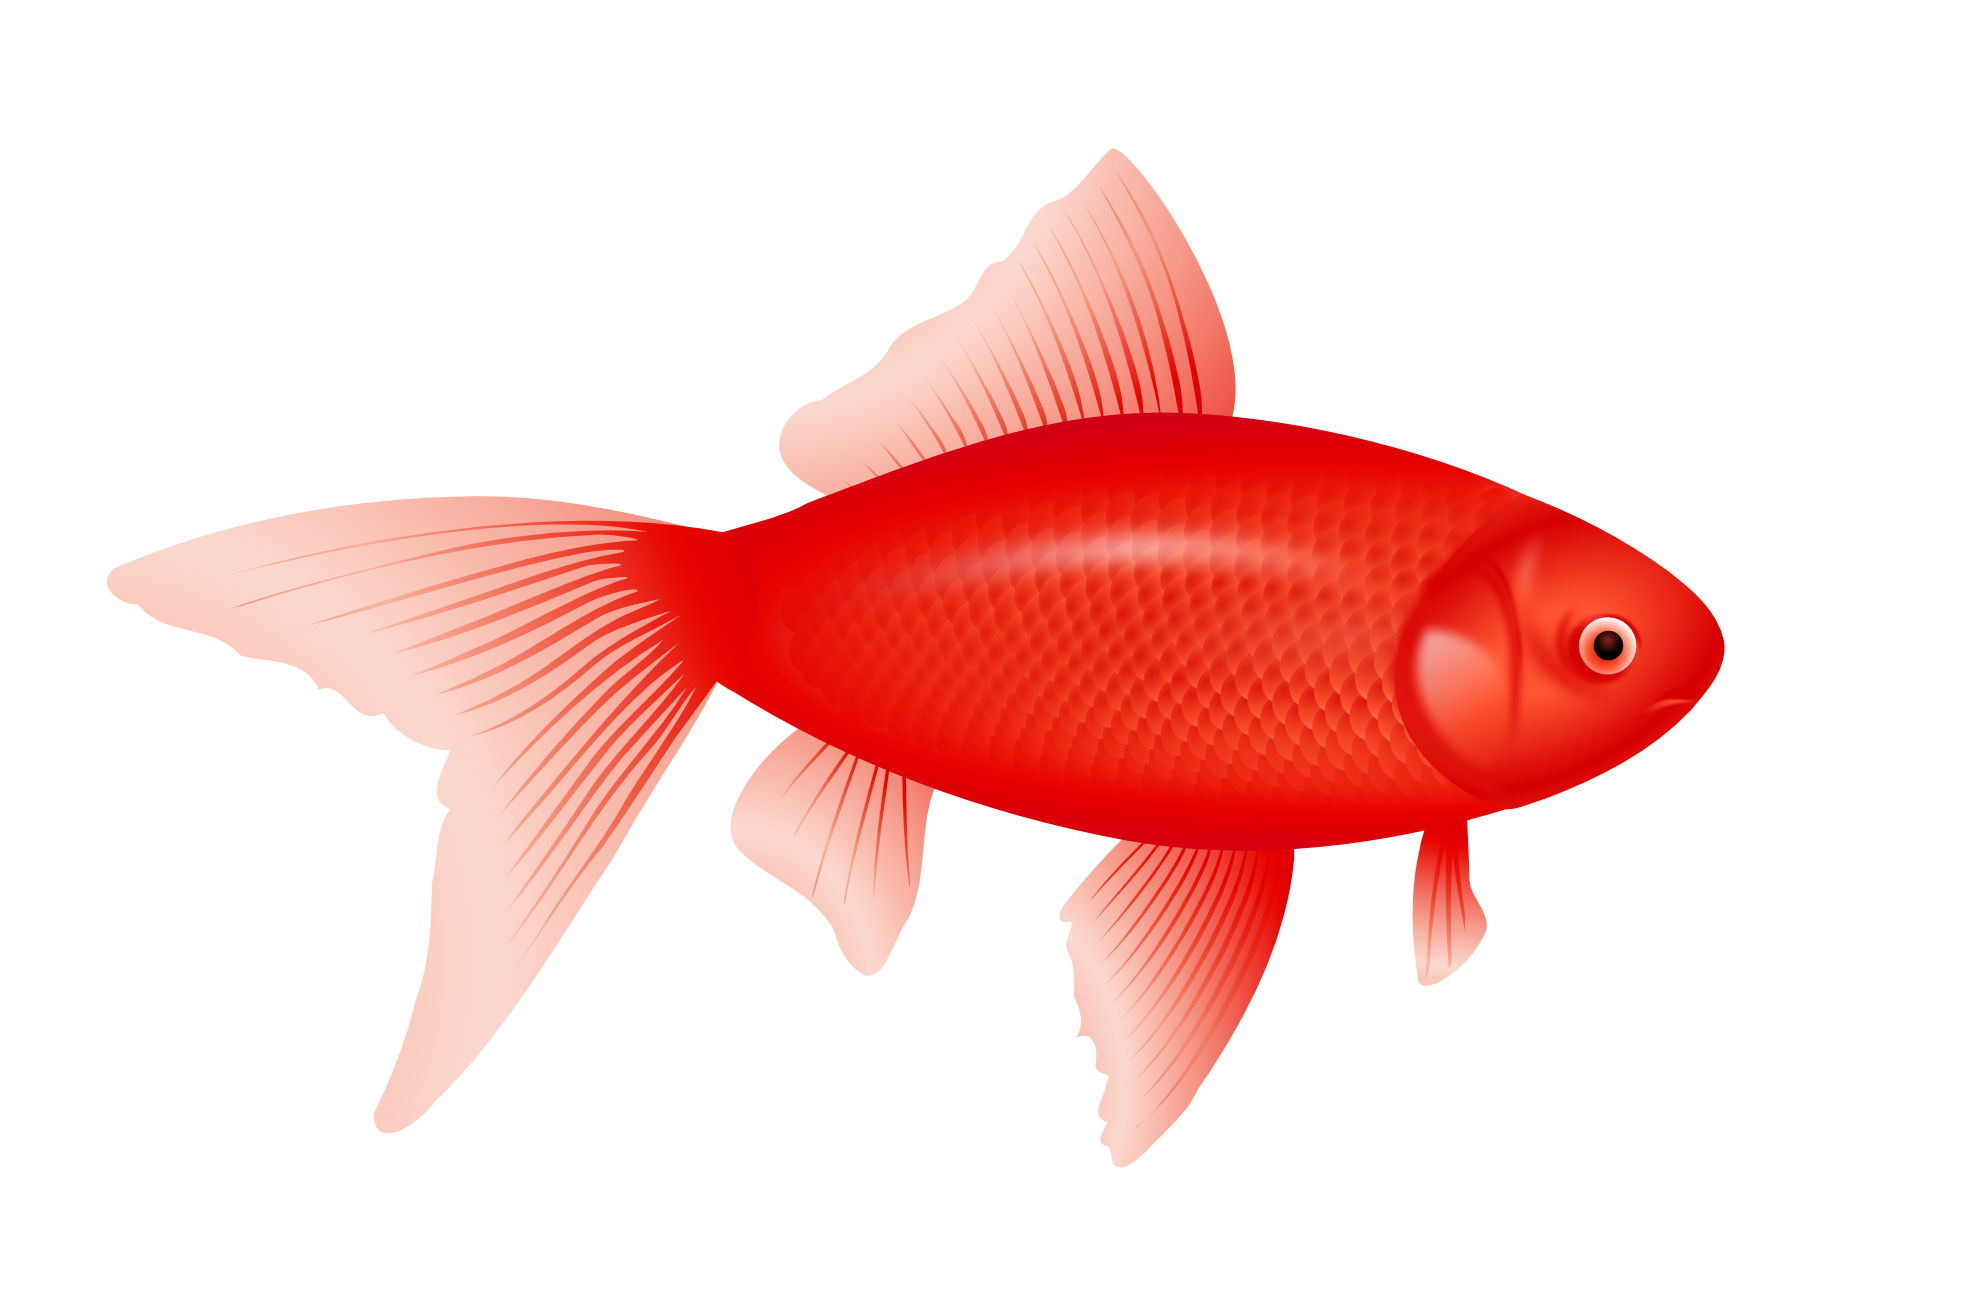 Realistic cool fish clipart images svg royalty free library Fish Six | Isolated Stock Photo by noBACKS.com svg royalty free library